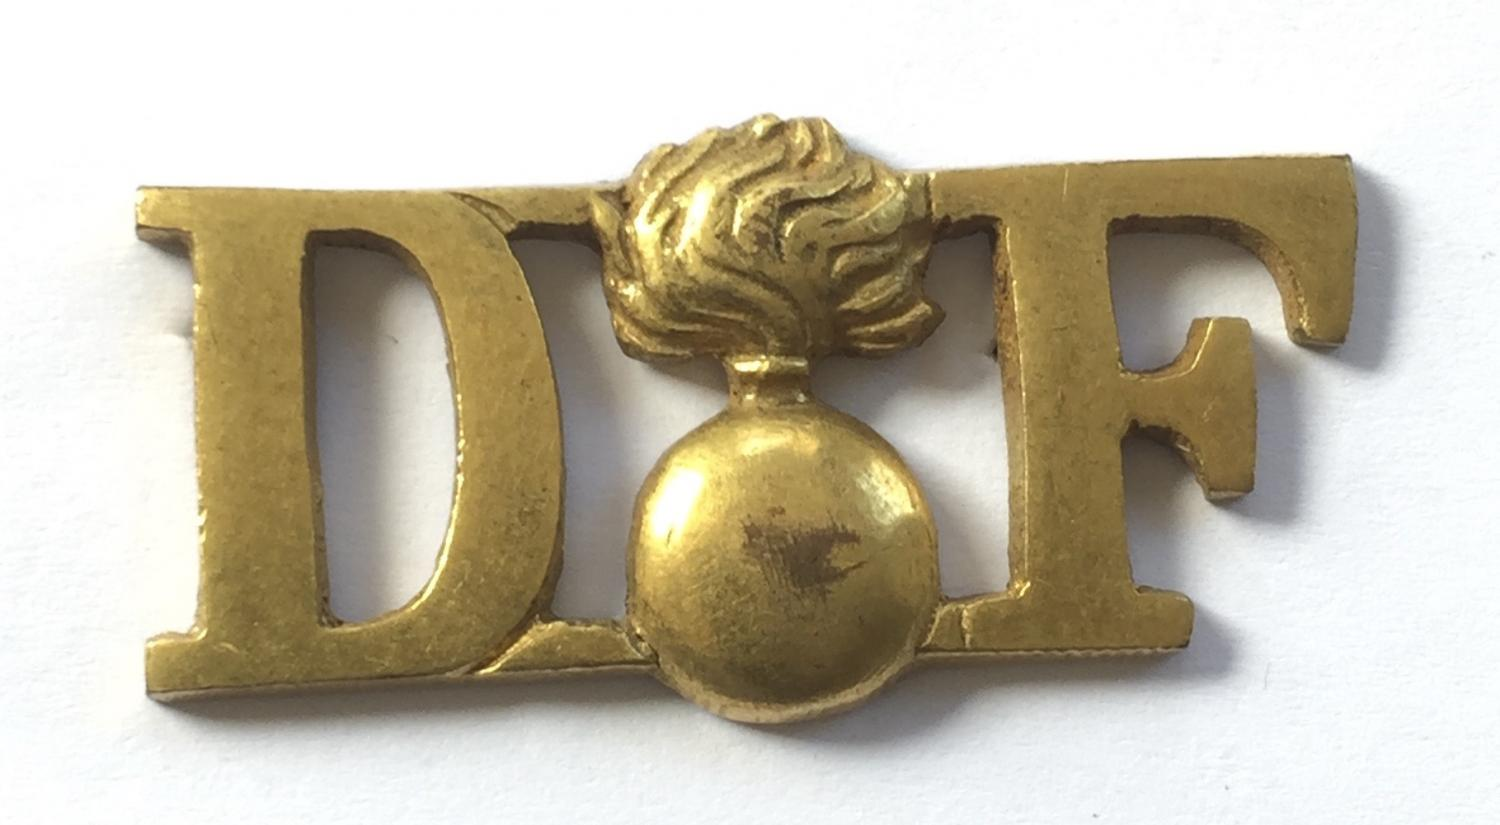 Royal Dublin Fusiliers gilt Irish shoulder title